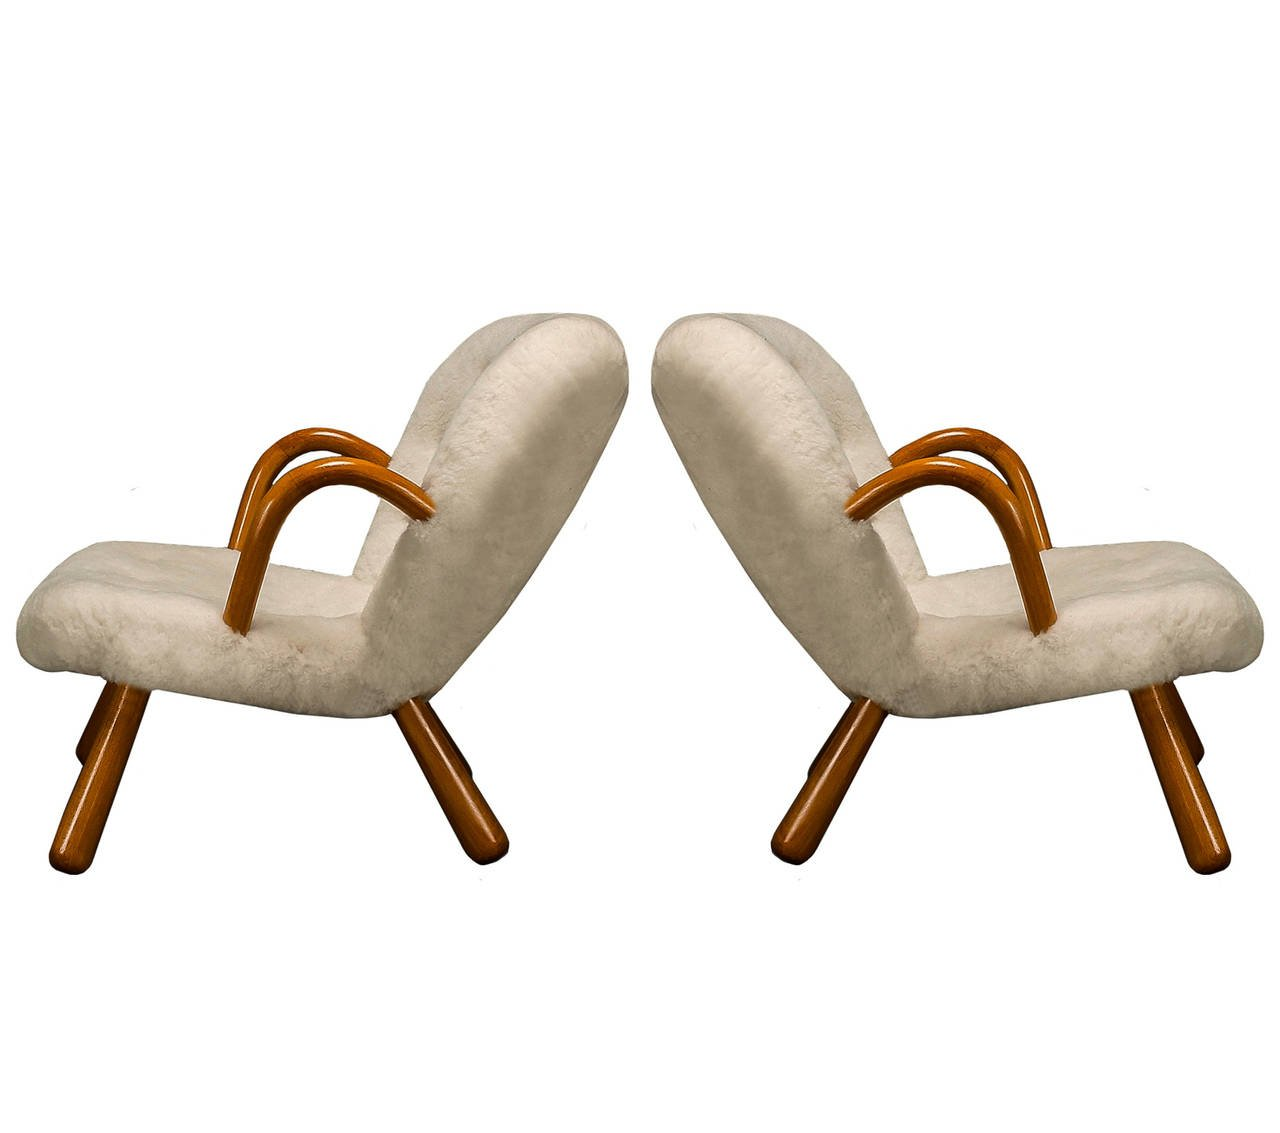 Pair of Philip Arctander Clam Chairs, 1940s - The Exchange Int